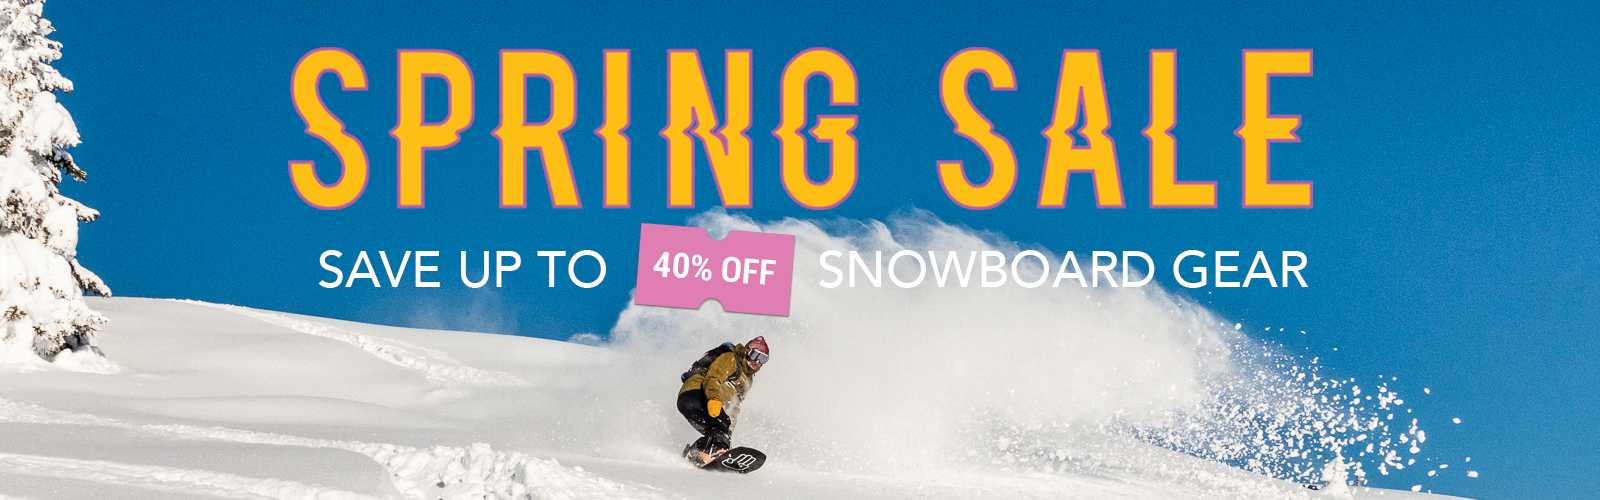 Spring Sale - Save up to 40% on snowboard gear